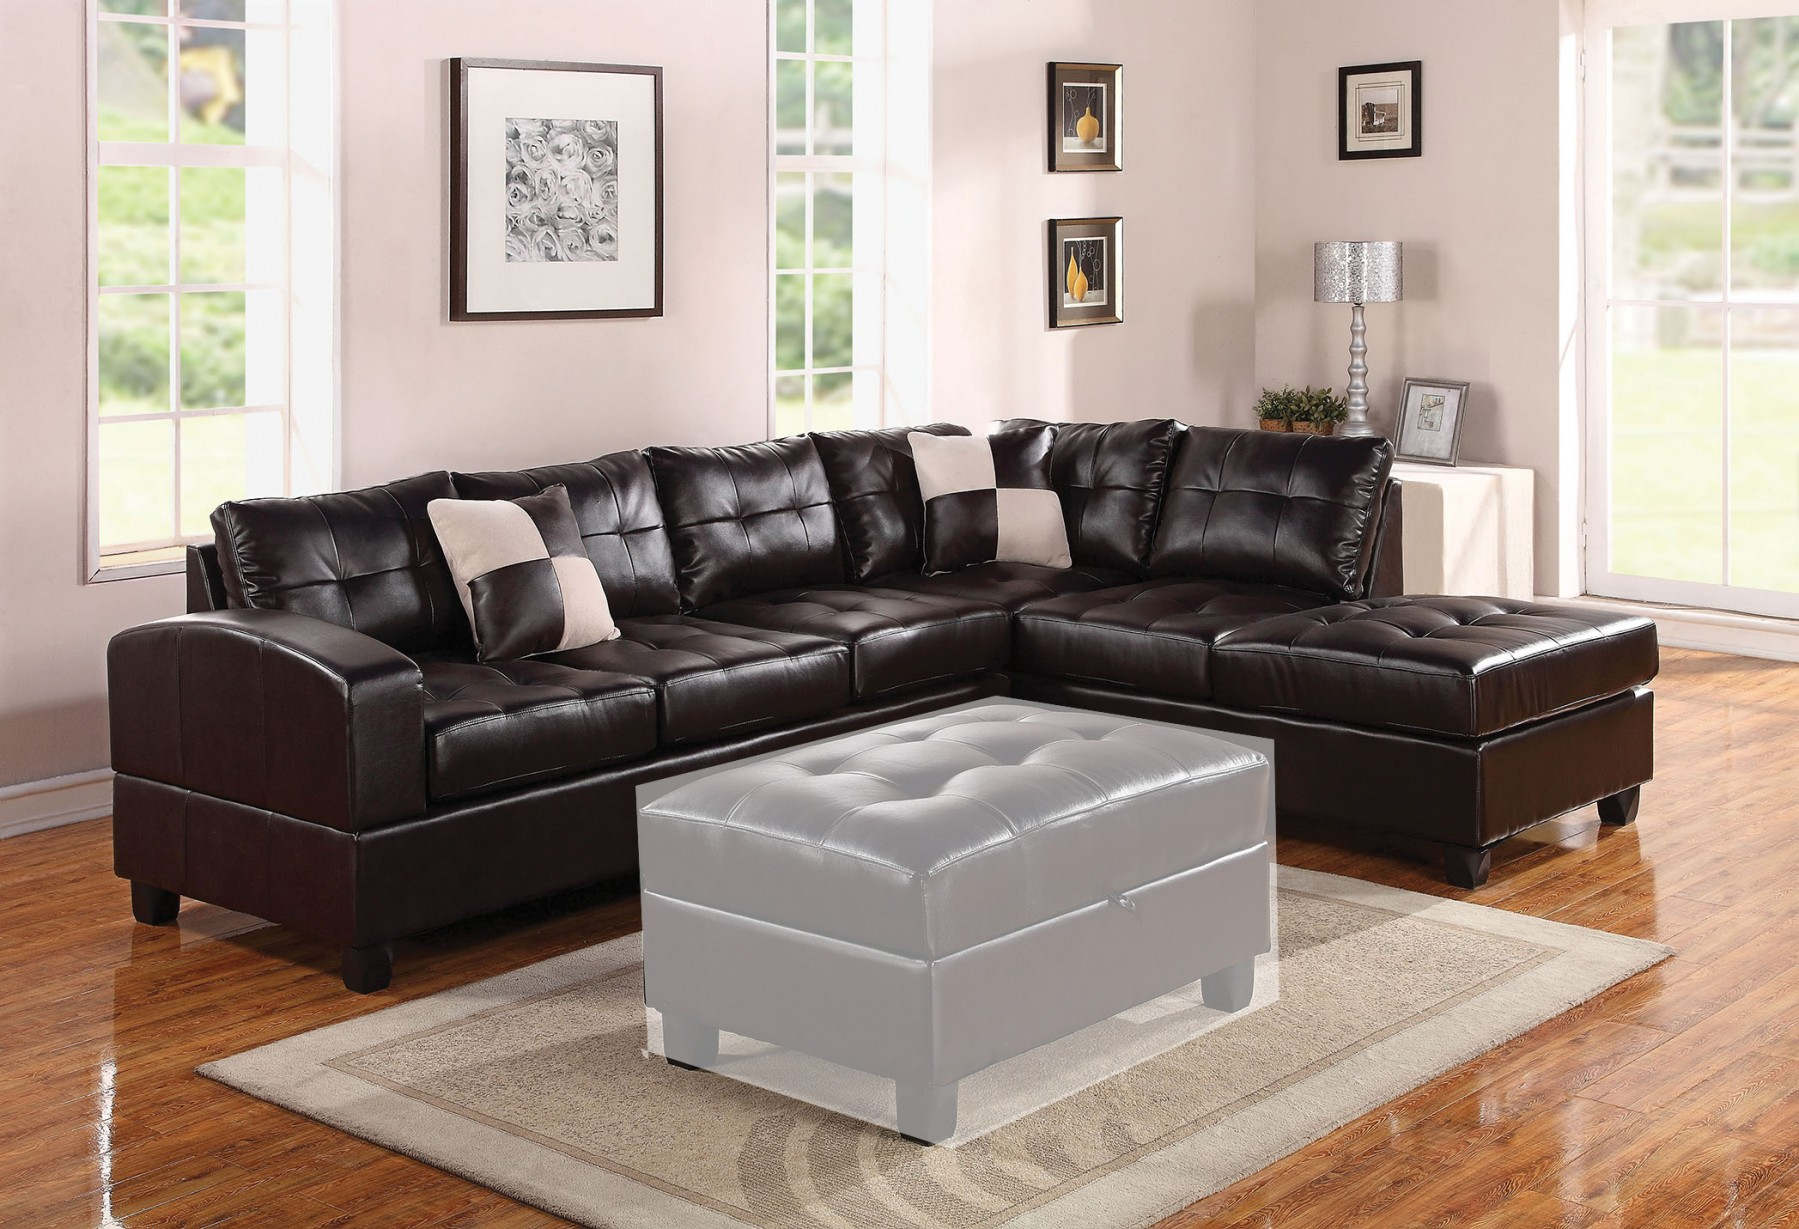 espresso bonded leather reclining sofa loveseat set deep dimensions living room sectional contemporary